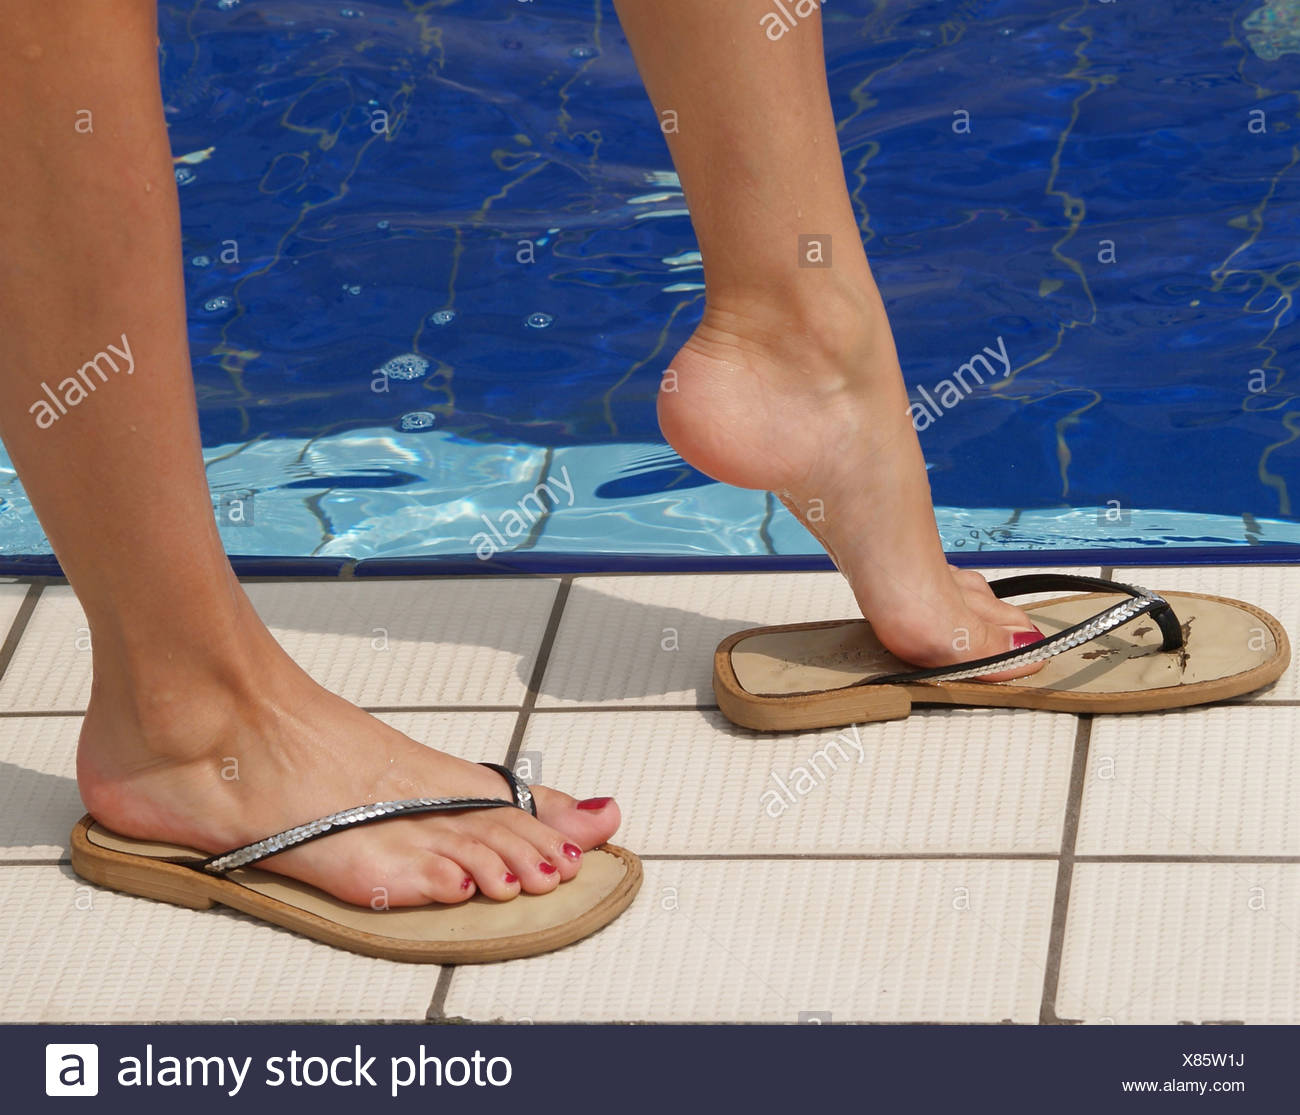 8b086f016 young woman s feet with varnished toenails in flip-flops at the edge of a swimming  pool